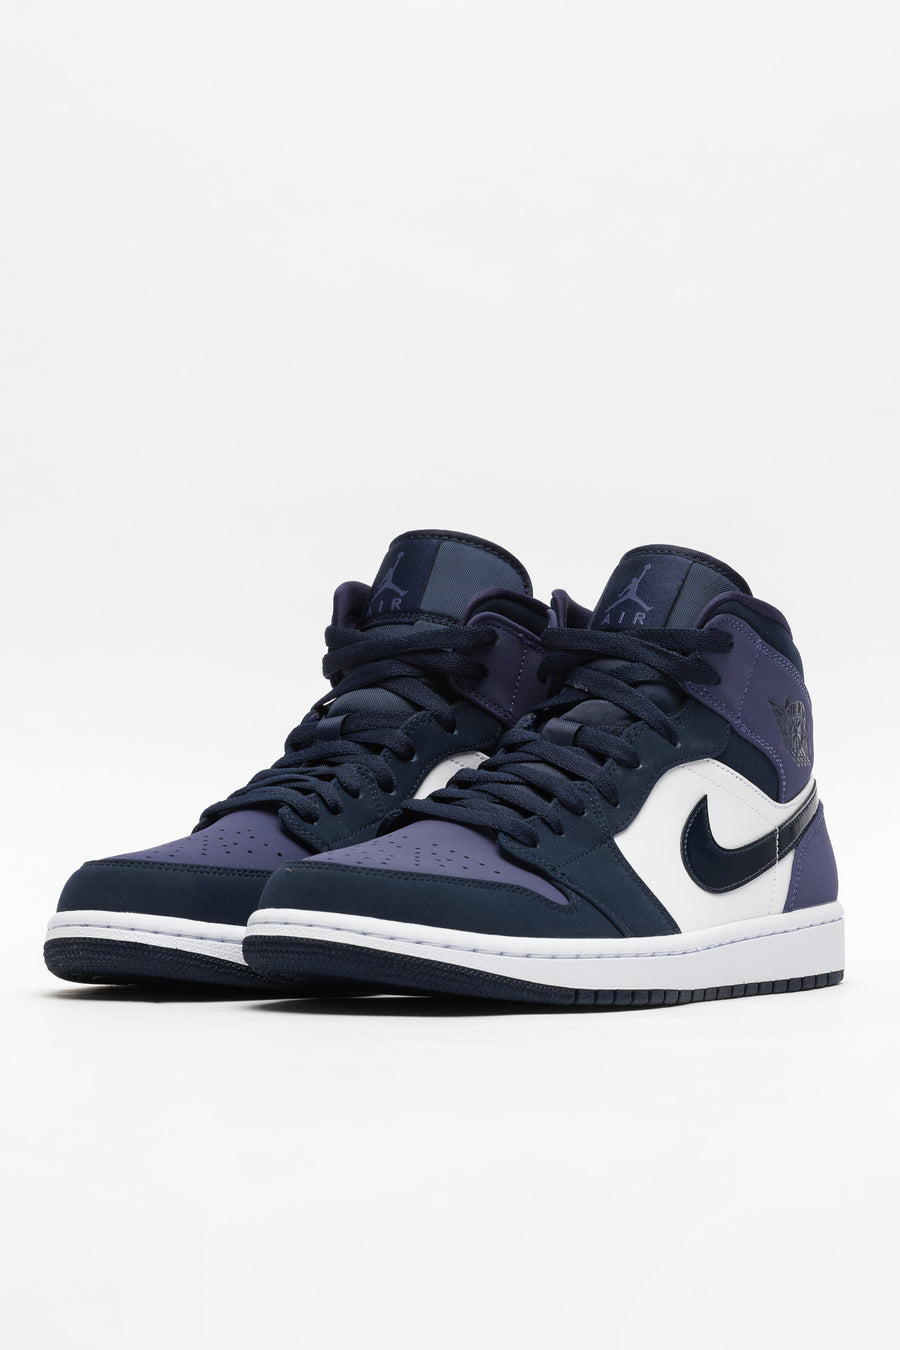 Jordan Air Jordan 1 Mid in Obsidian/Purple/White - Notre